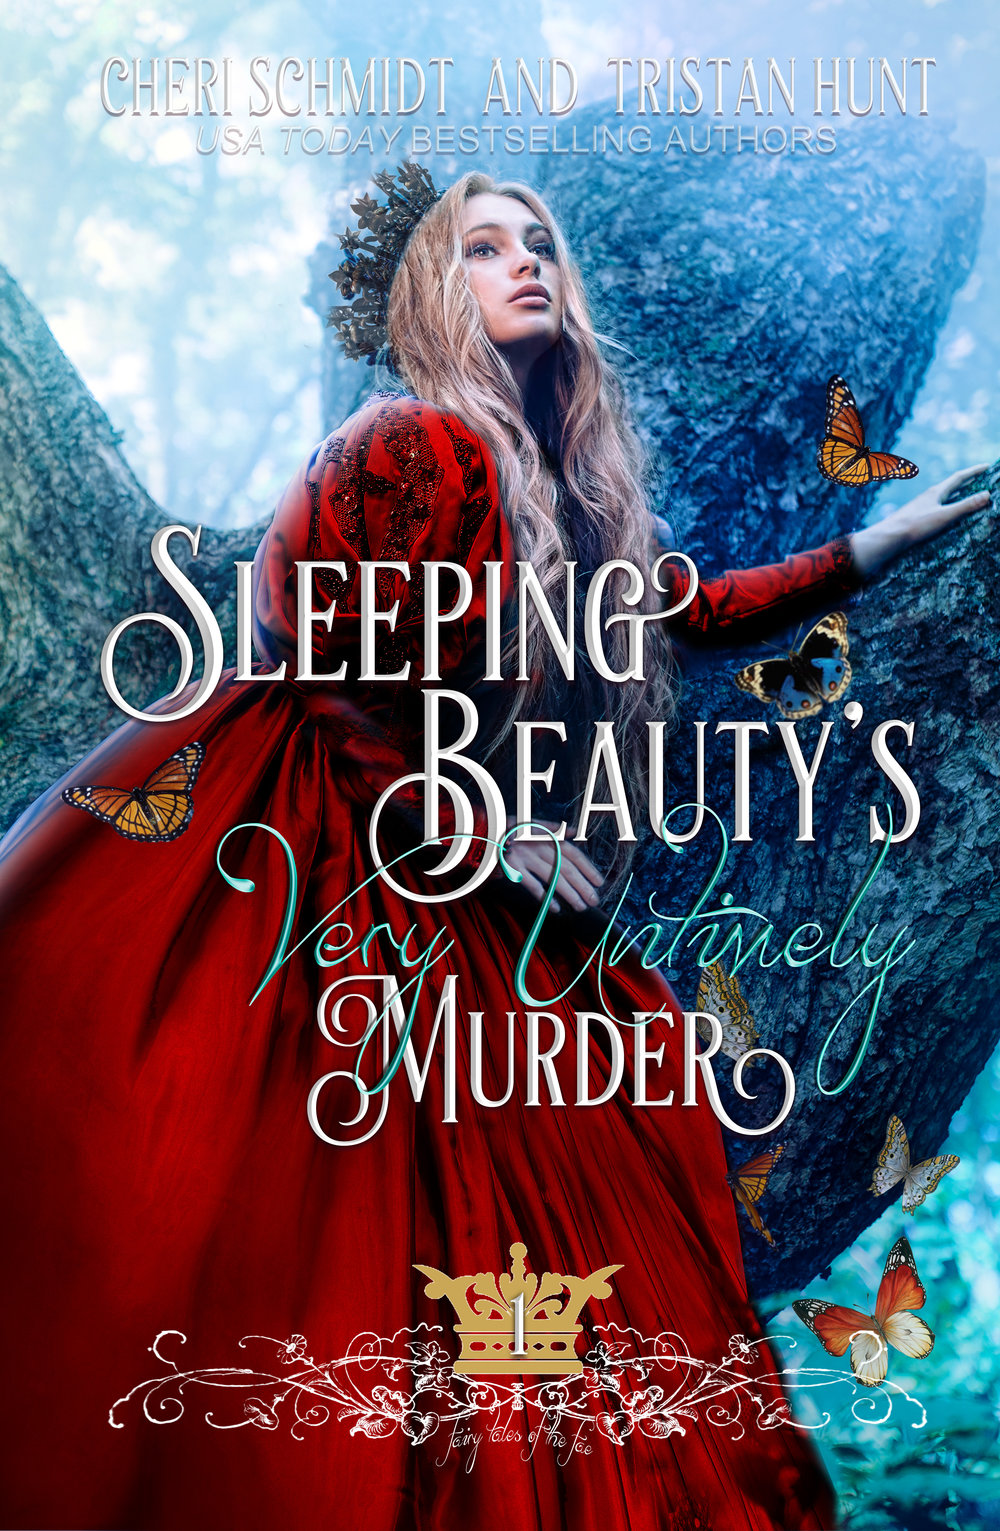 7-23-18 Sleeping Beauty's Untimely Murder-Schmidt and Hunt-final print7-24-18.jpg